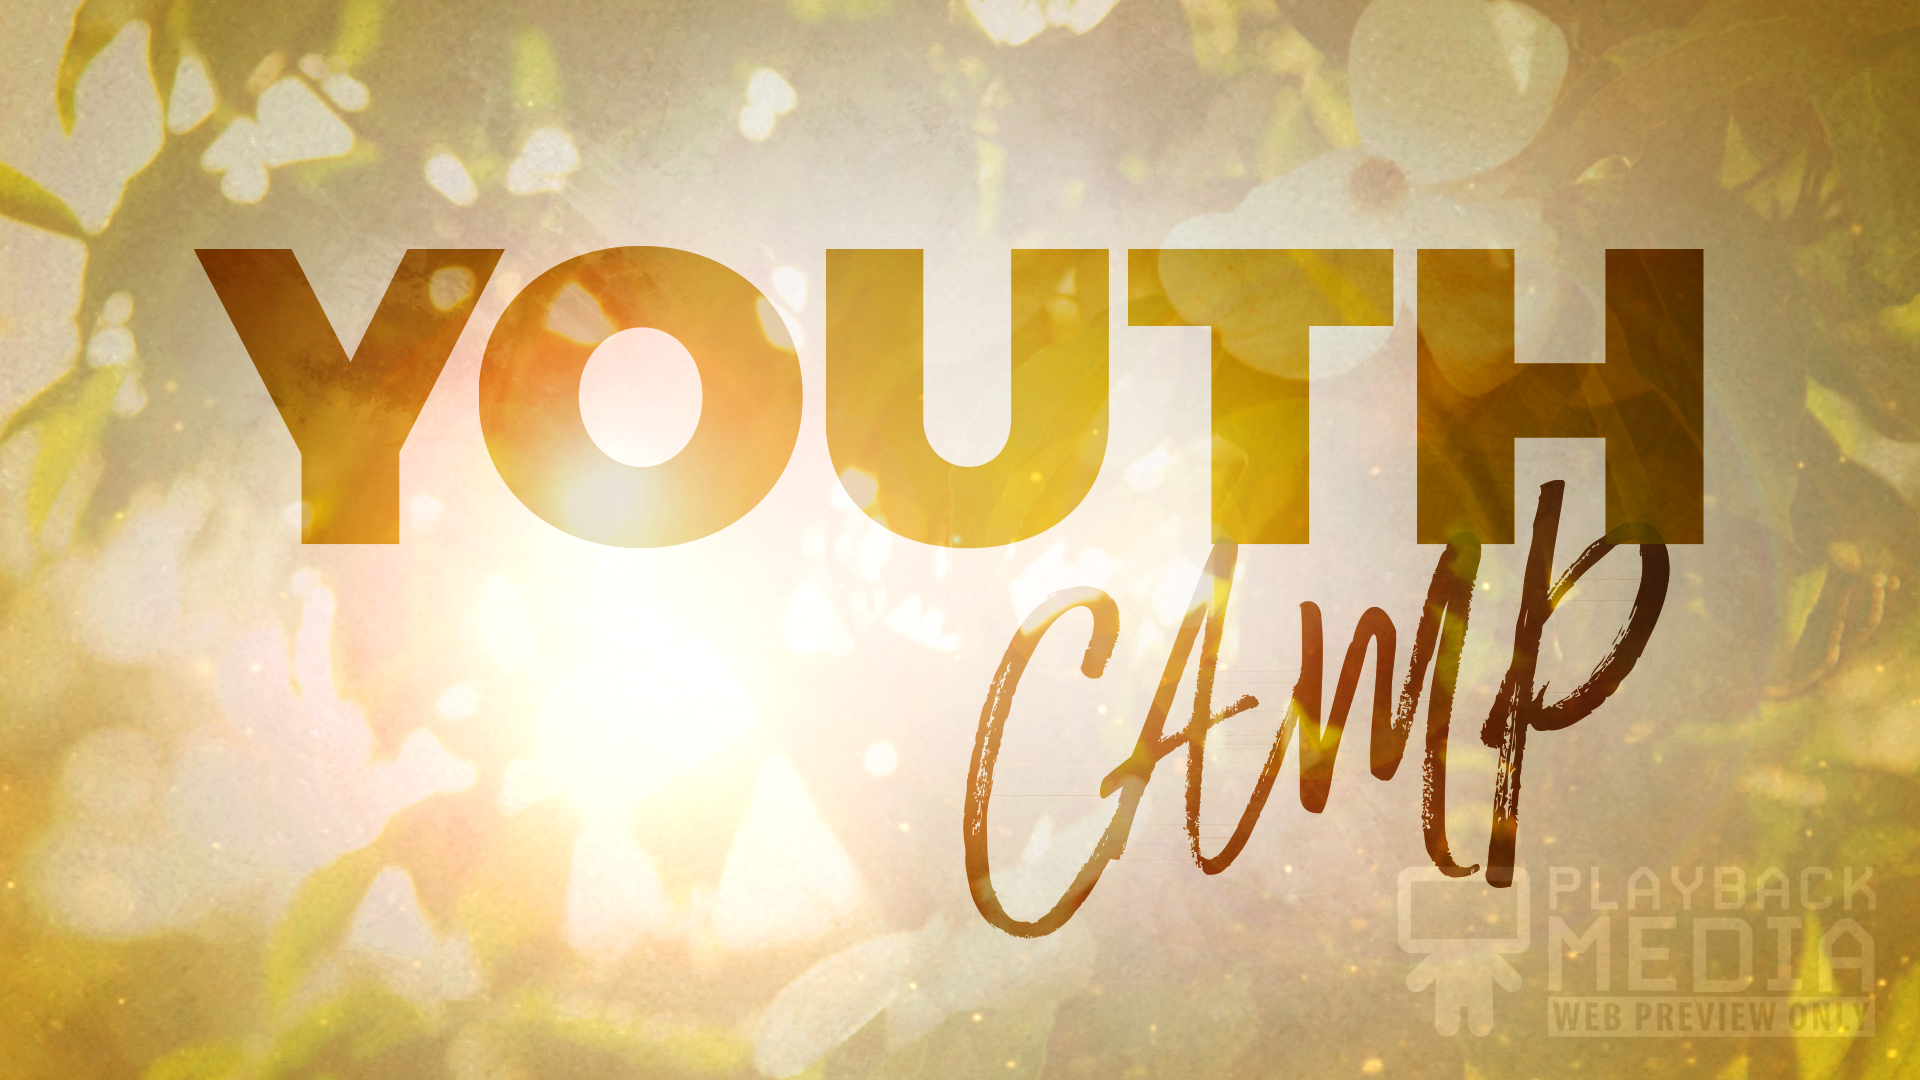 Sunny Days youth camp motion background